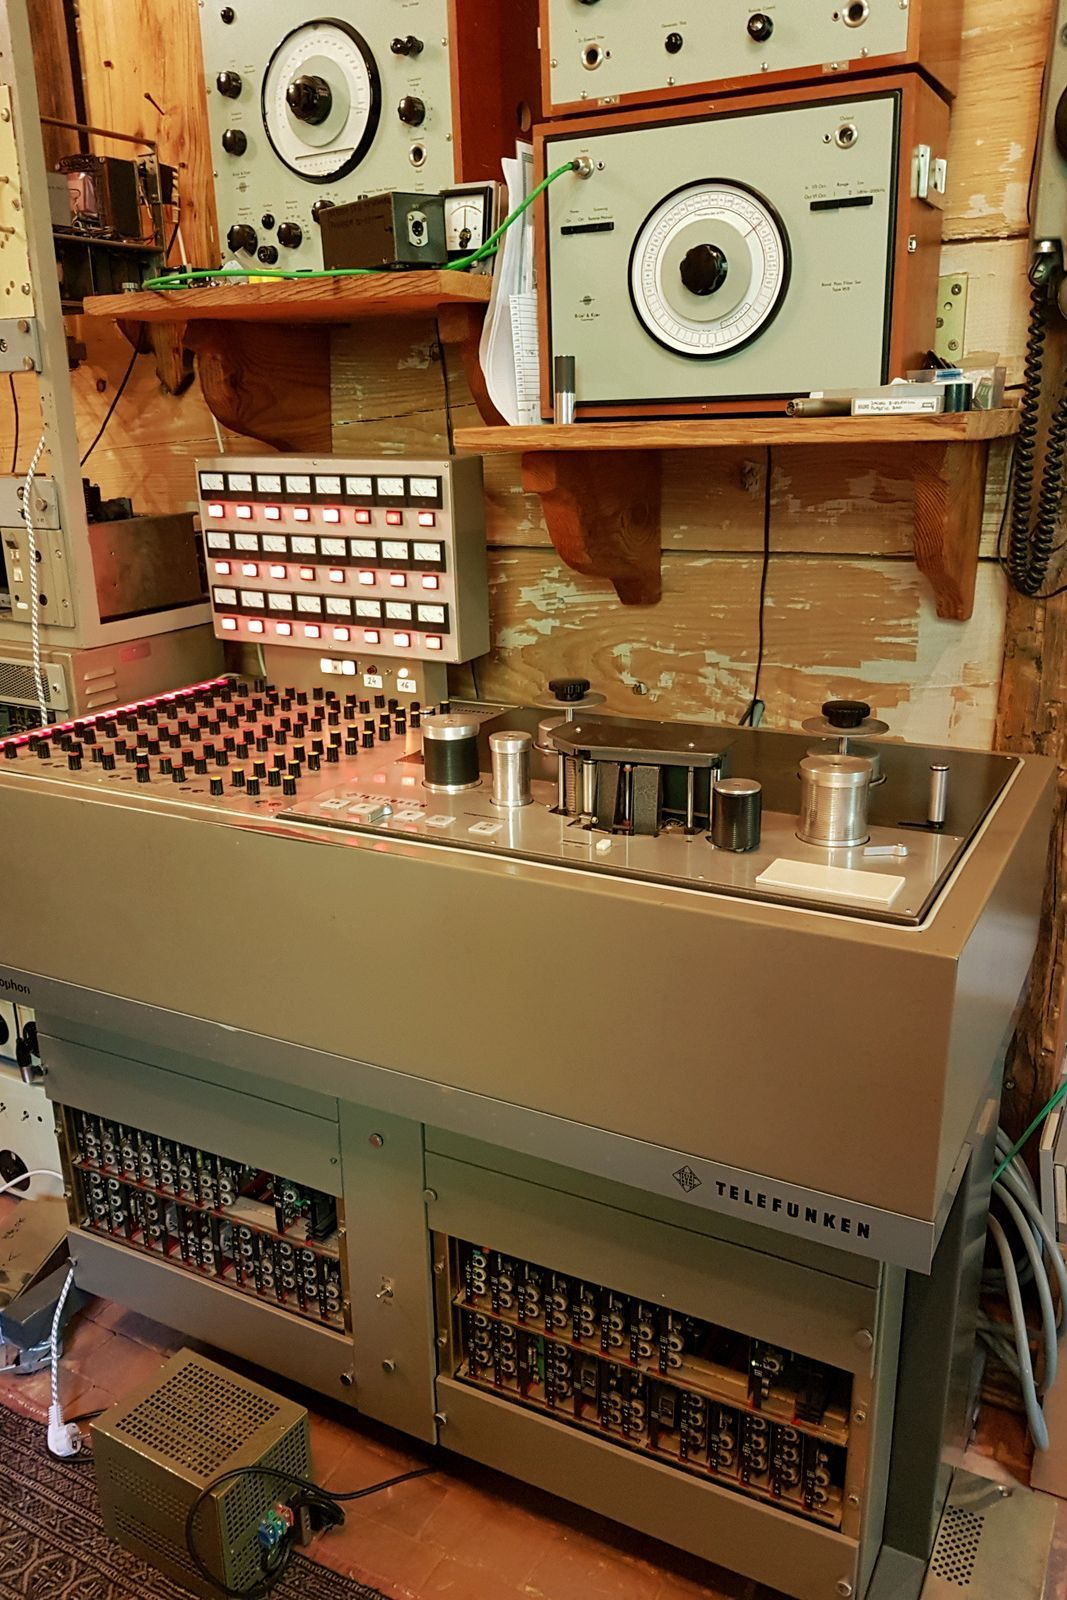 This Setup Is Funken Awesome Telefunken Awesome That Is